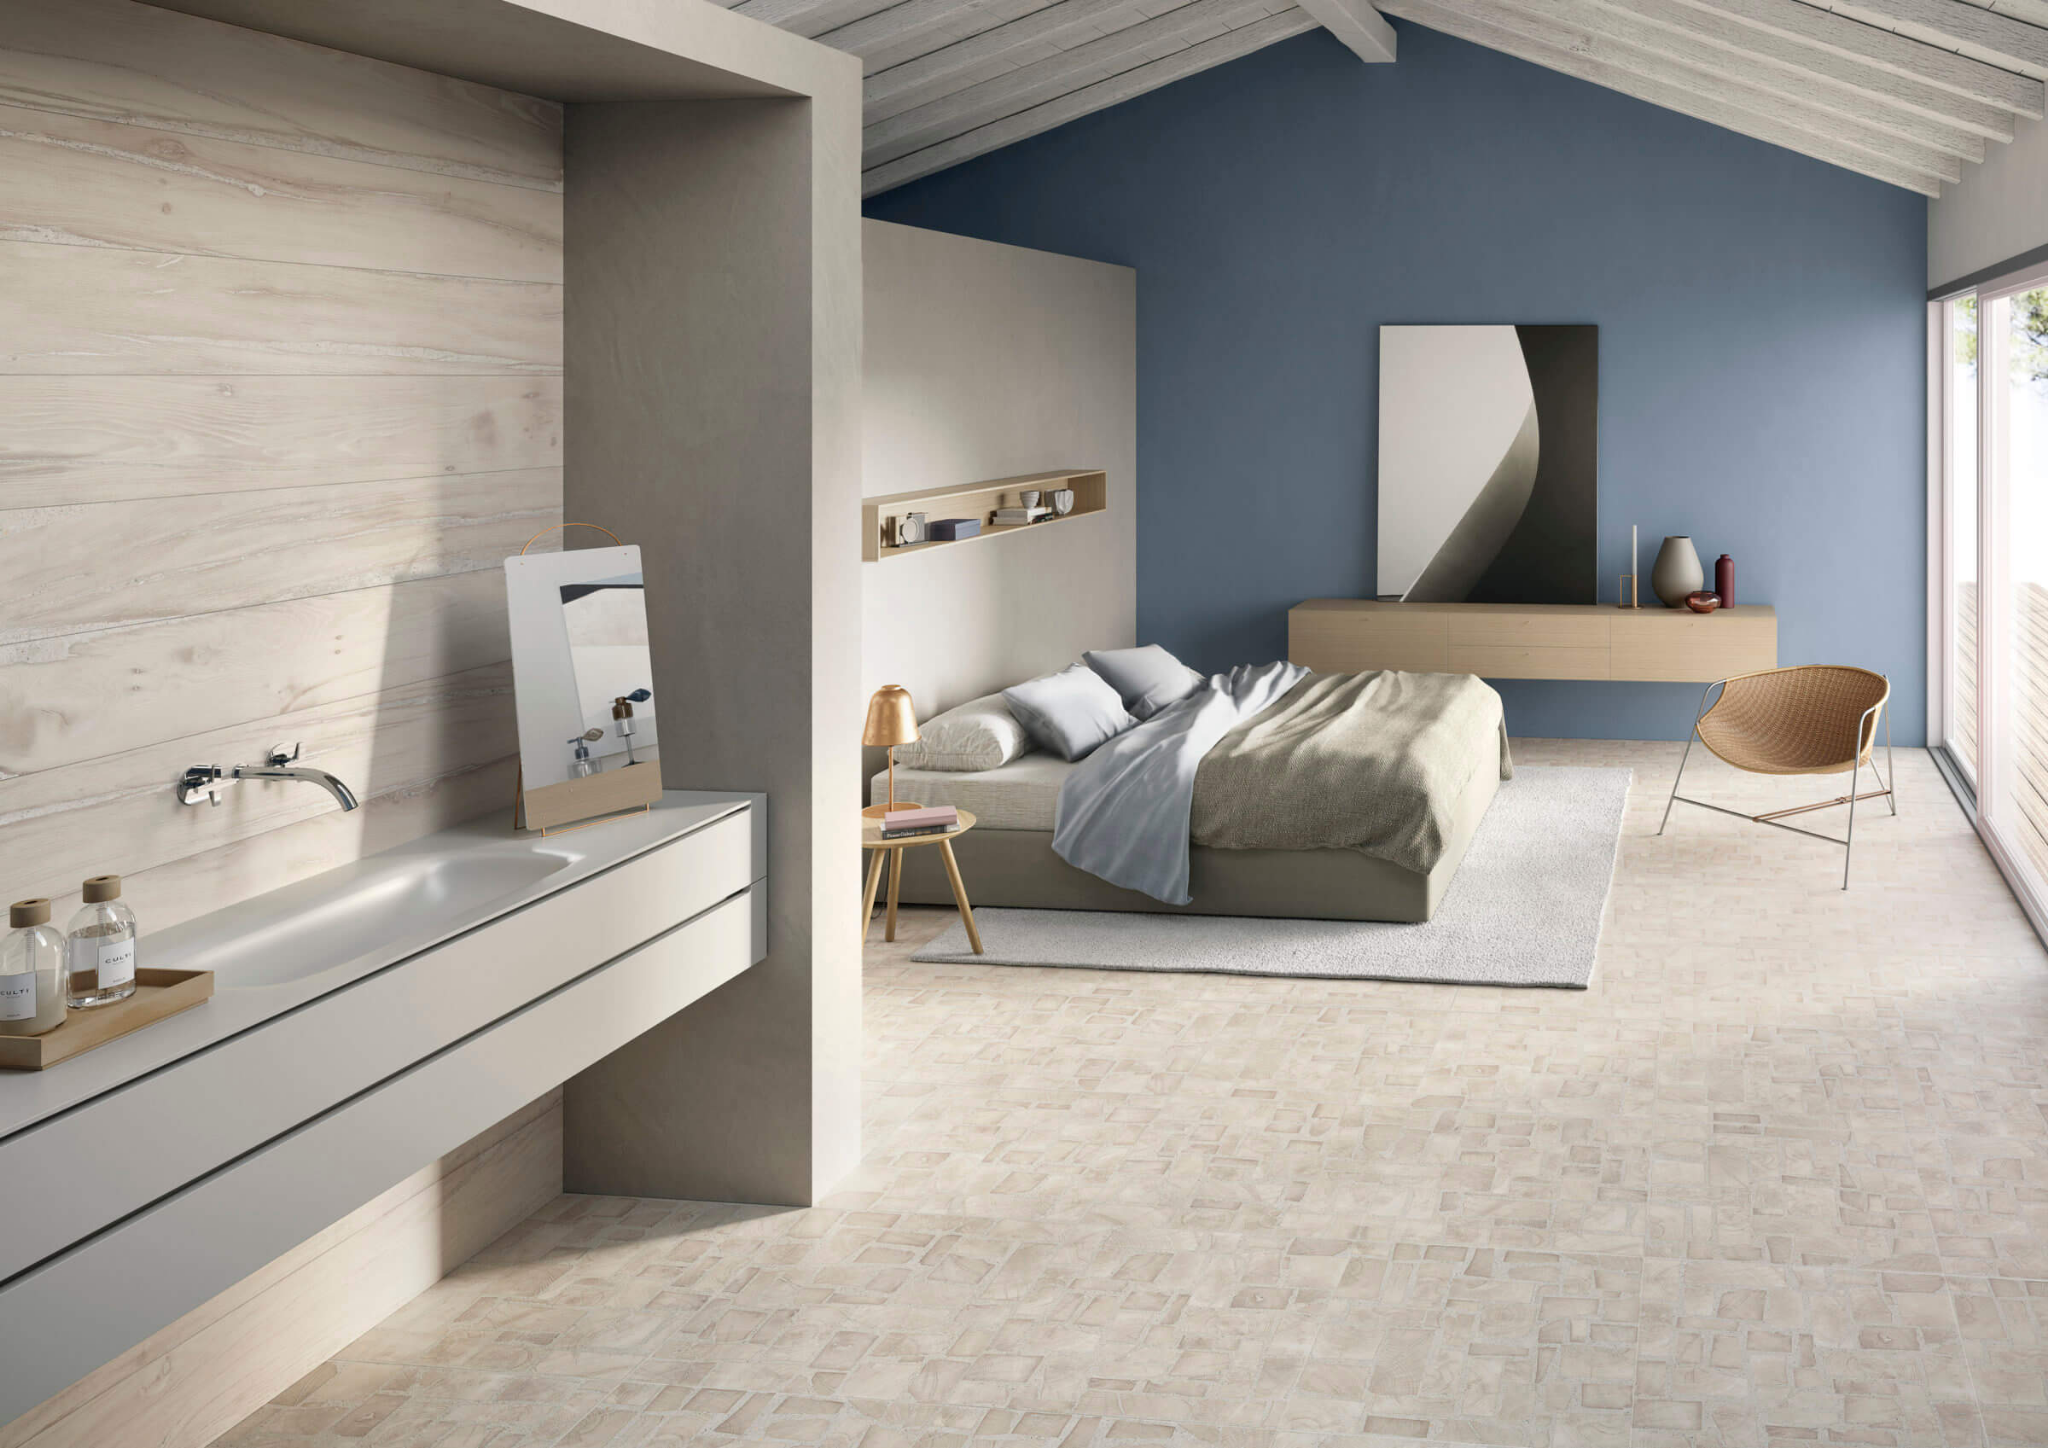 Bedroom with light wood-look tile flooring and walls